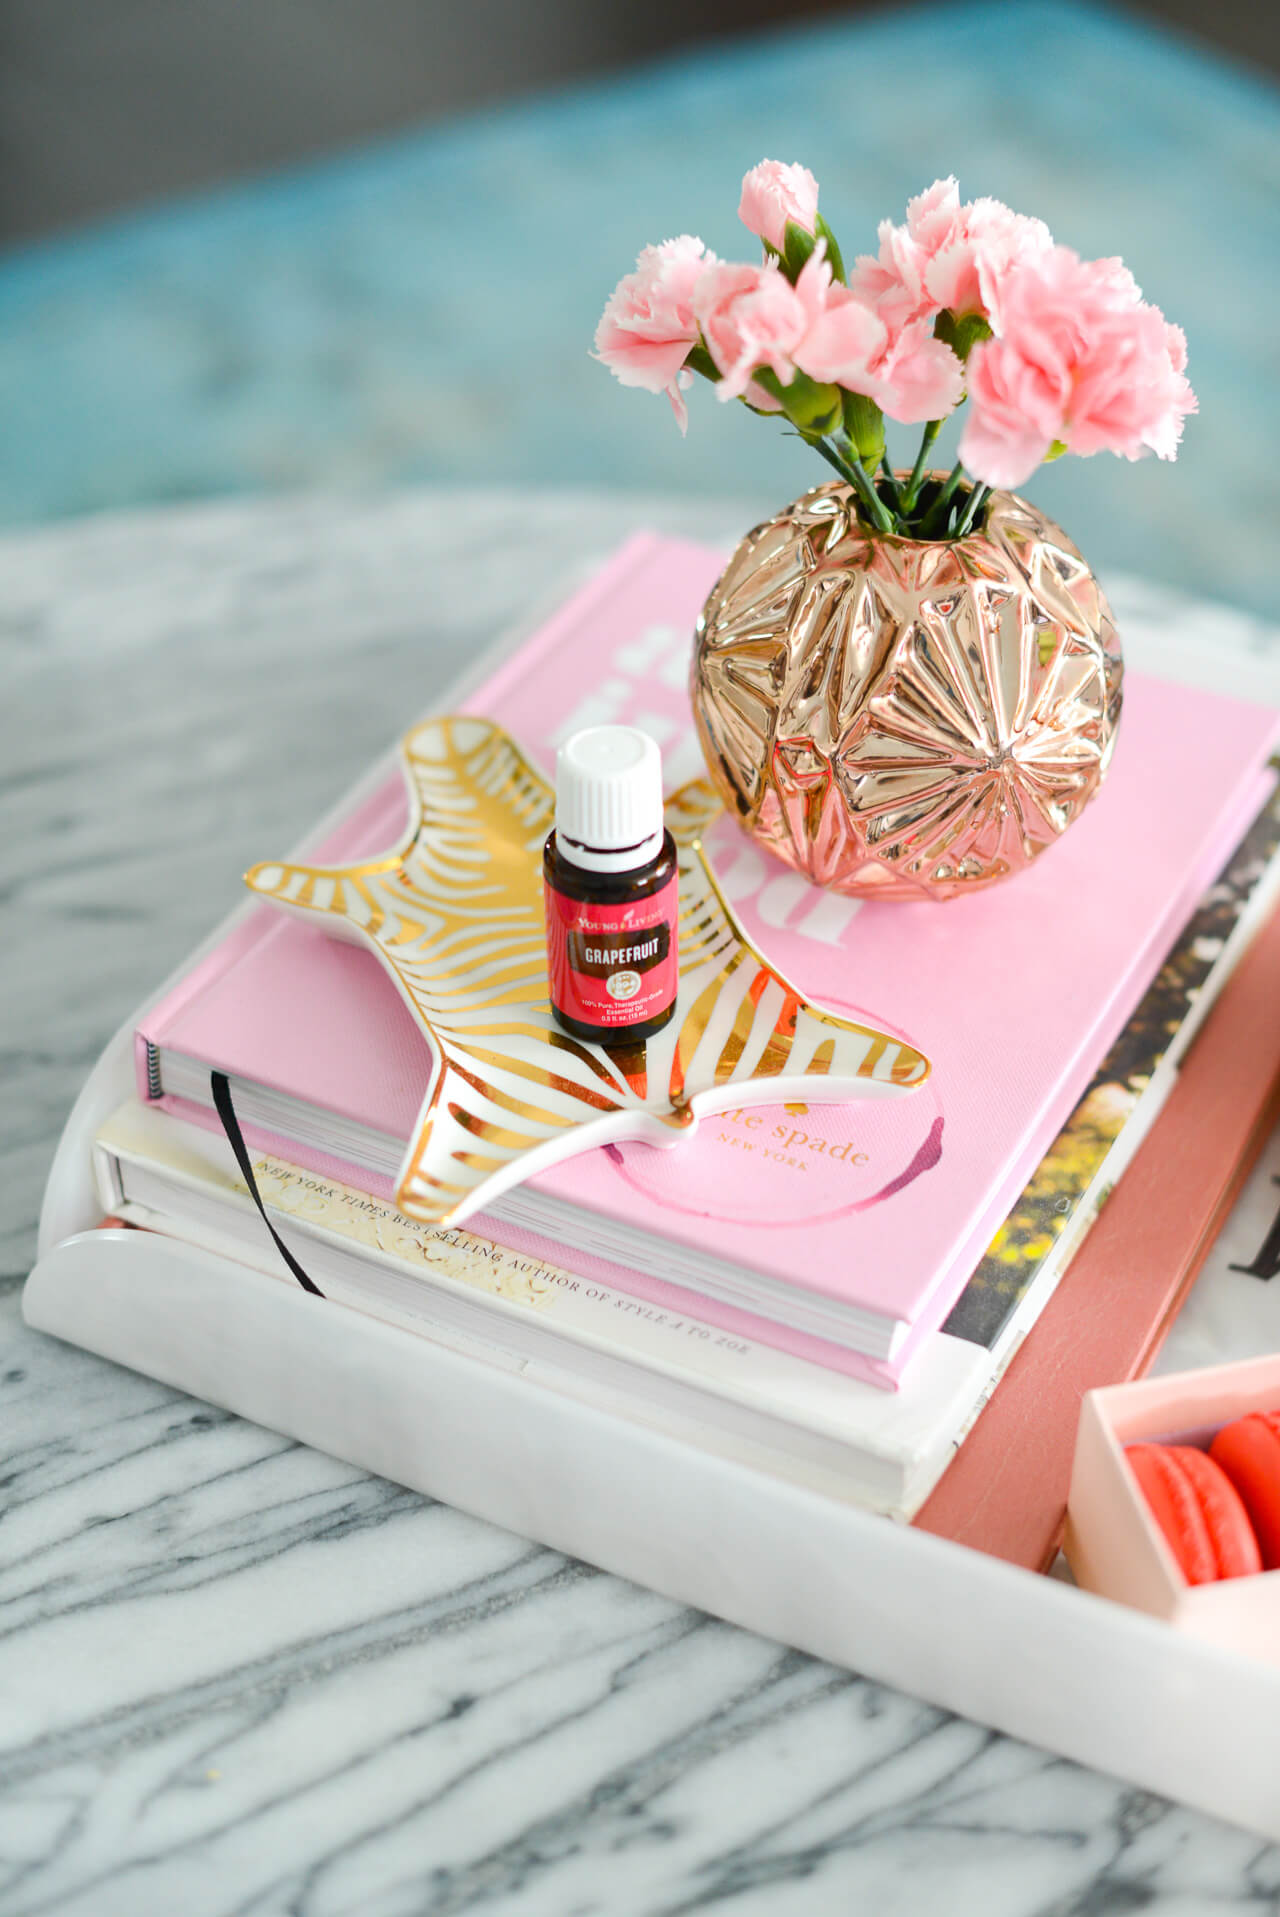 one of my favorite essential oils- grapefruit